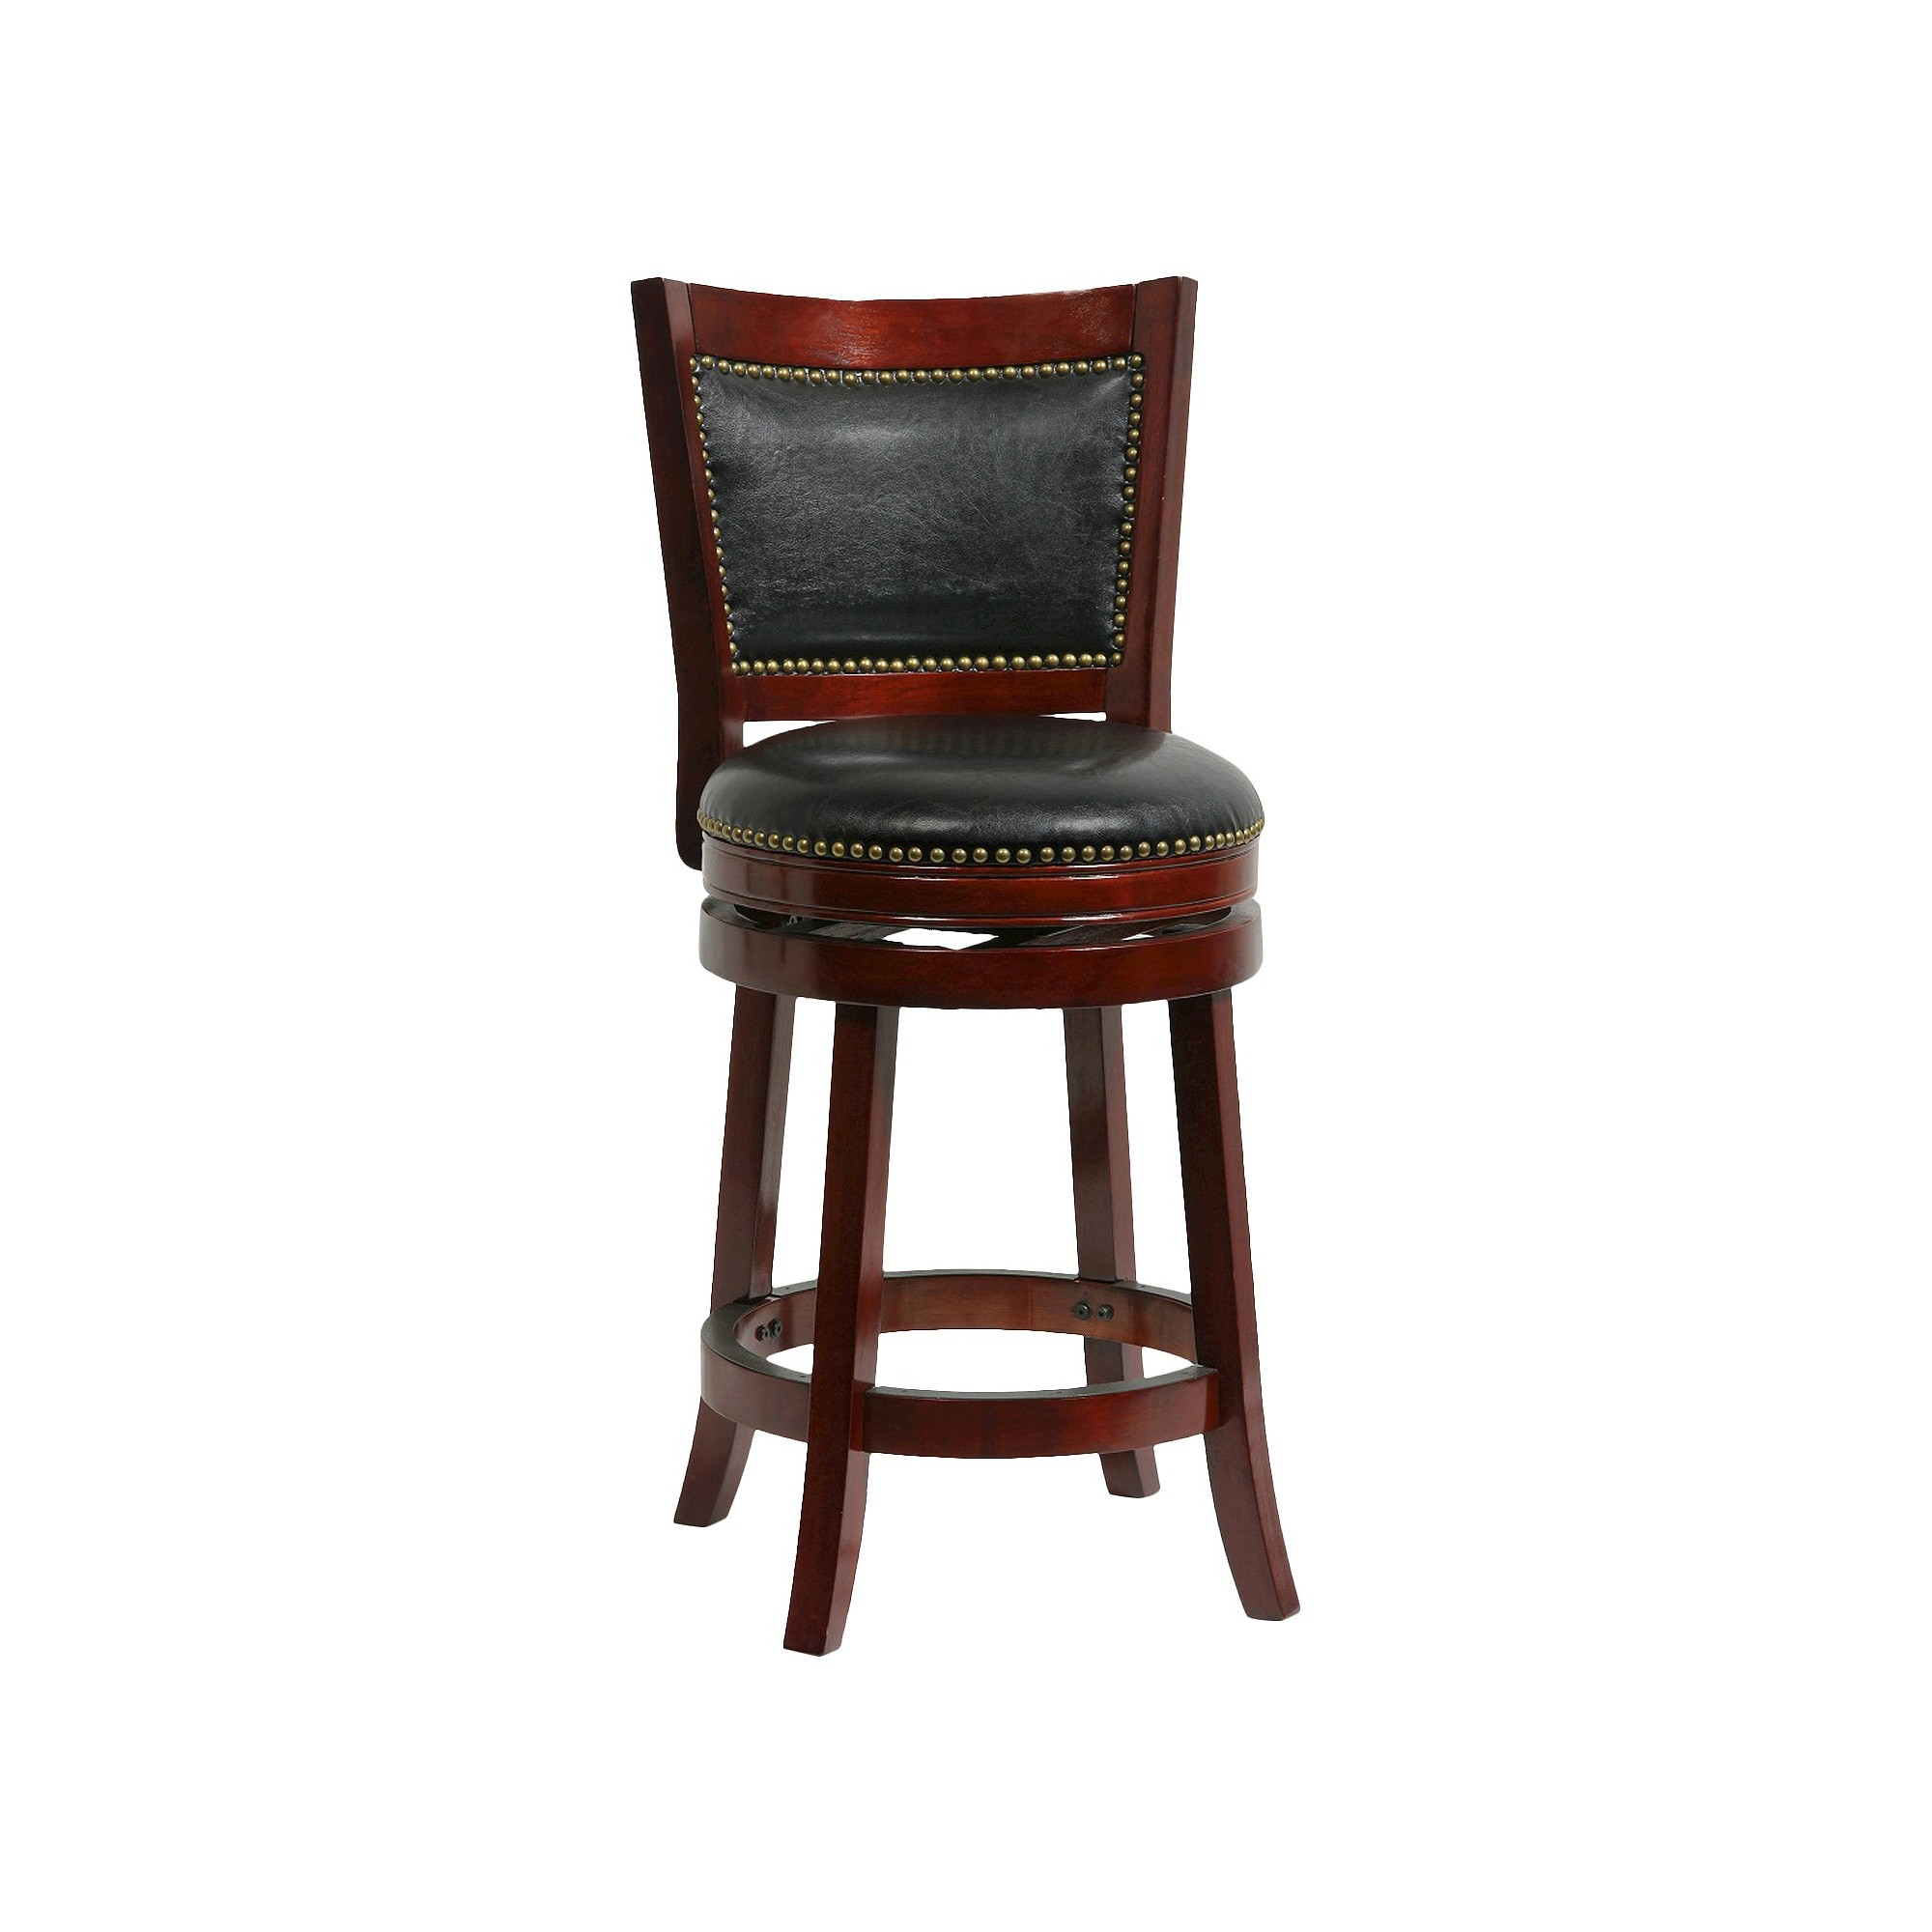 Amazing Boraam Bristol Swivel 24 Counter Stool Hardwood Cherry Bar Short Links Chair Design For Home Short Linksinfo